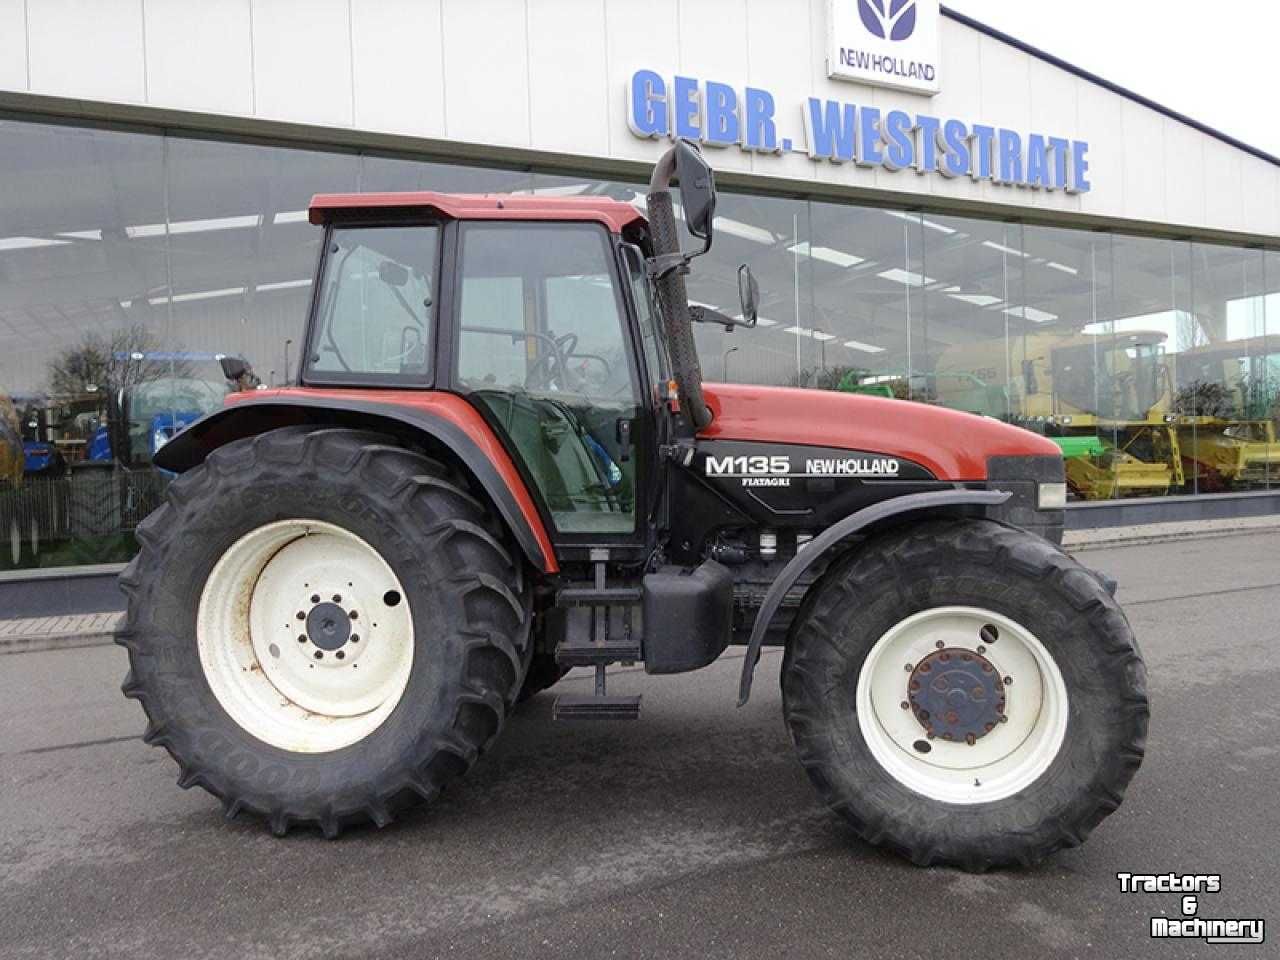 New holland m135 photo - 2